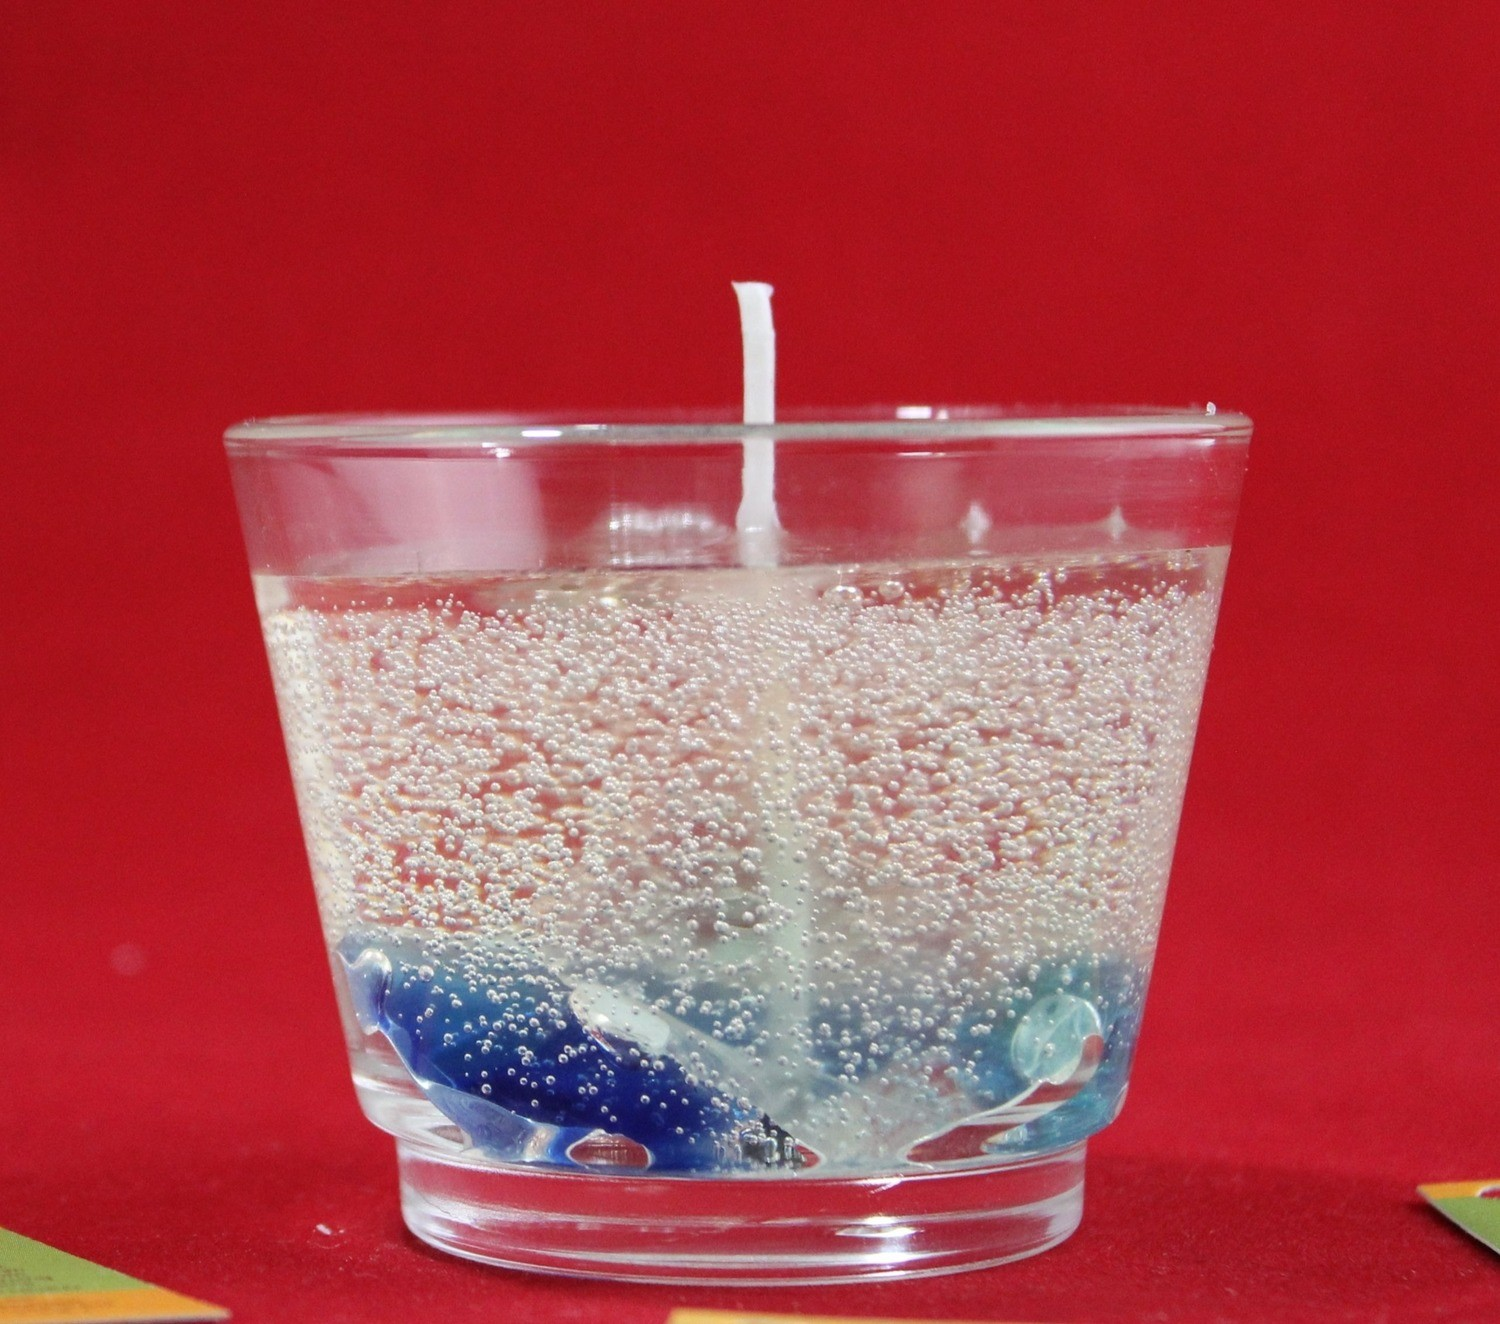 I Votives Scented Gel Candle In Votive Glass with Marble Embeds